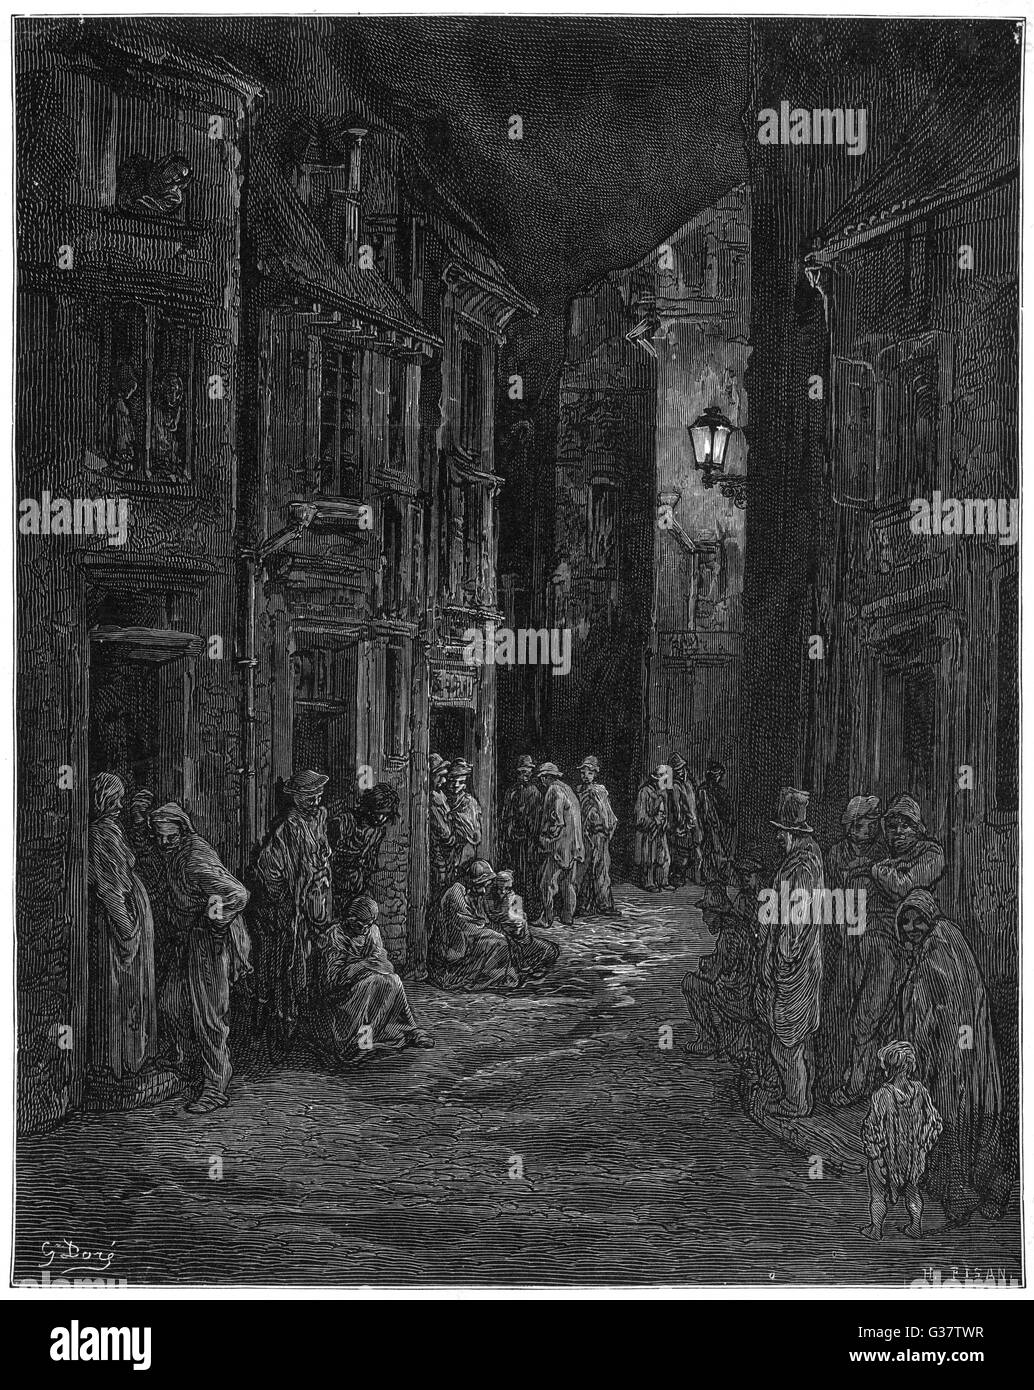 Bluegate Fields - a notorious  breeding-ground for crime and  suffering        Date: 1870 - Stock Image